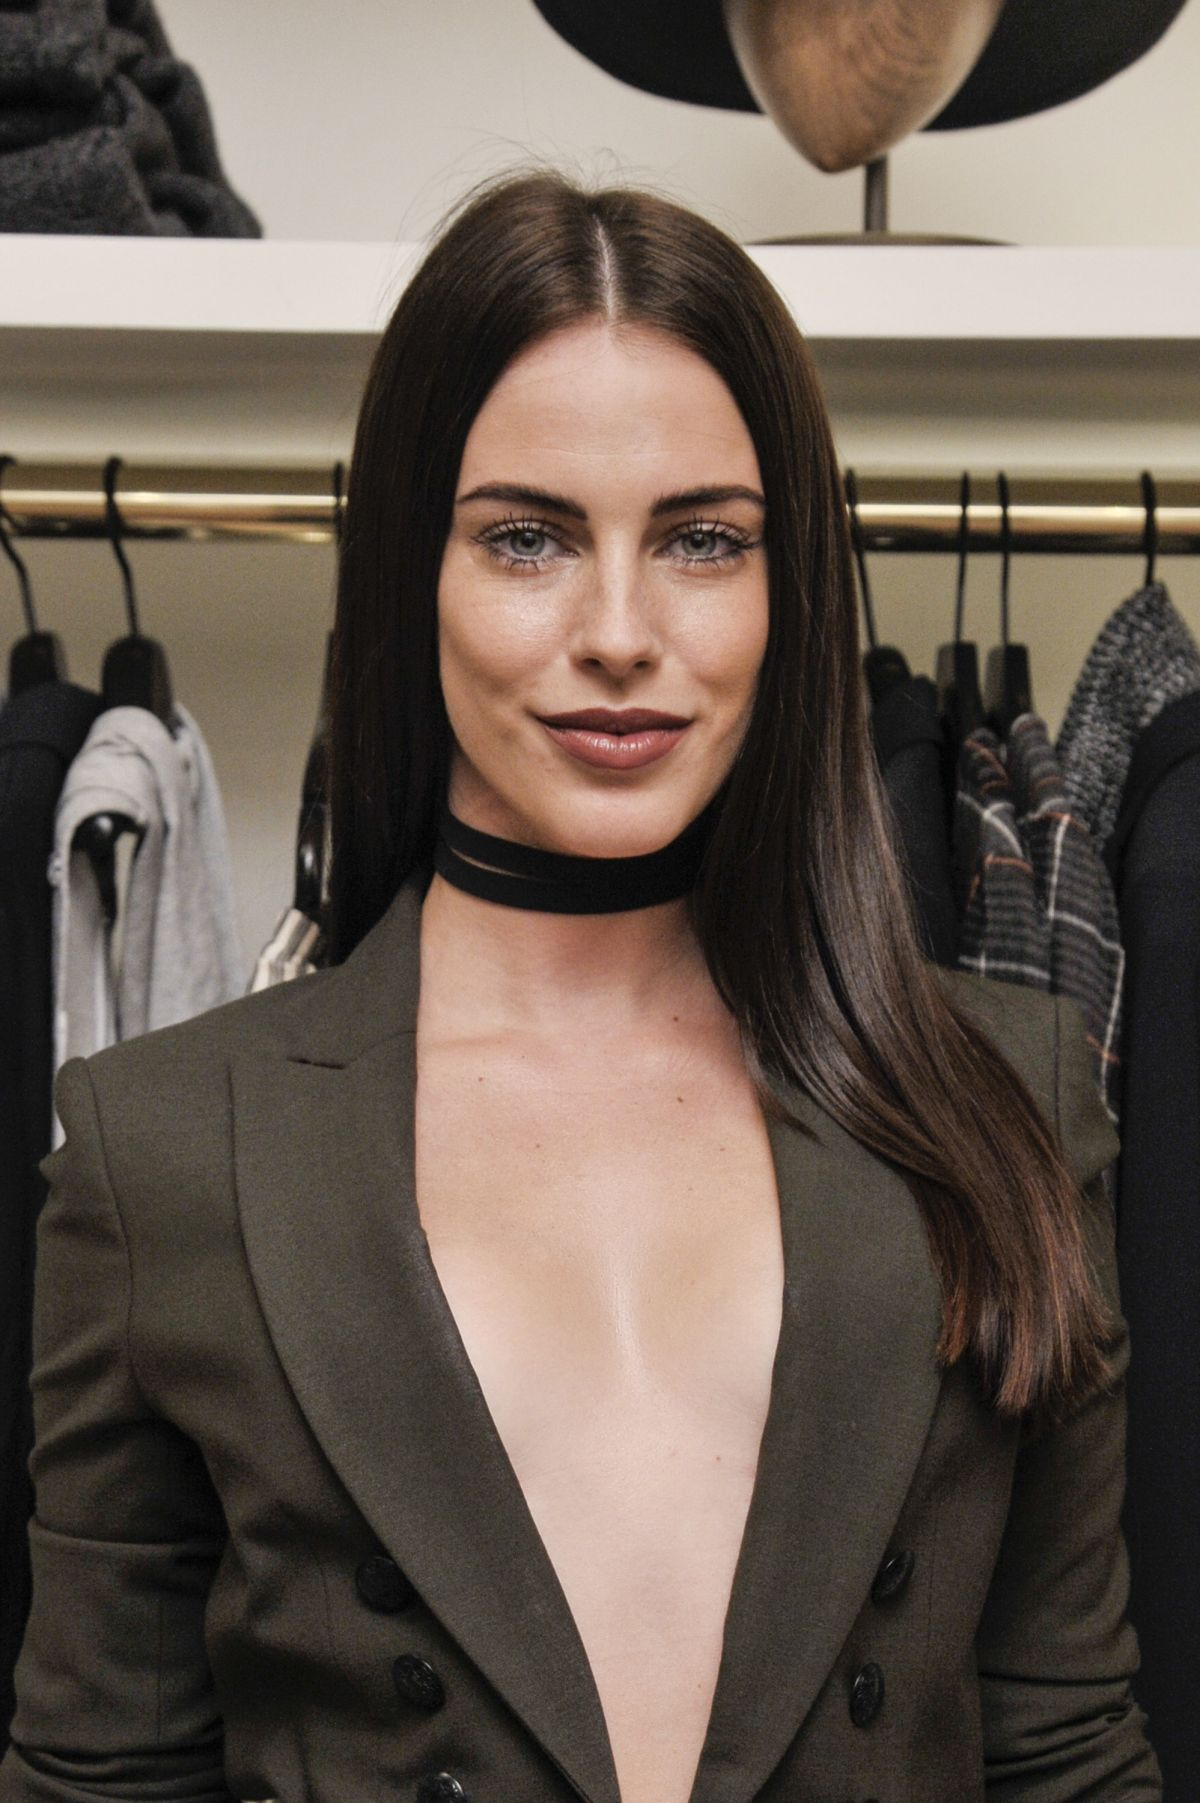 JESSOCA LOWNDES at Veronica Beard Afterparty at 2016 Fashion Week in New York 09/11/16